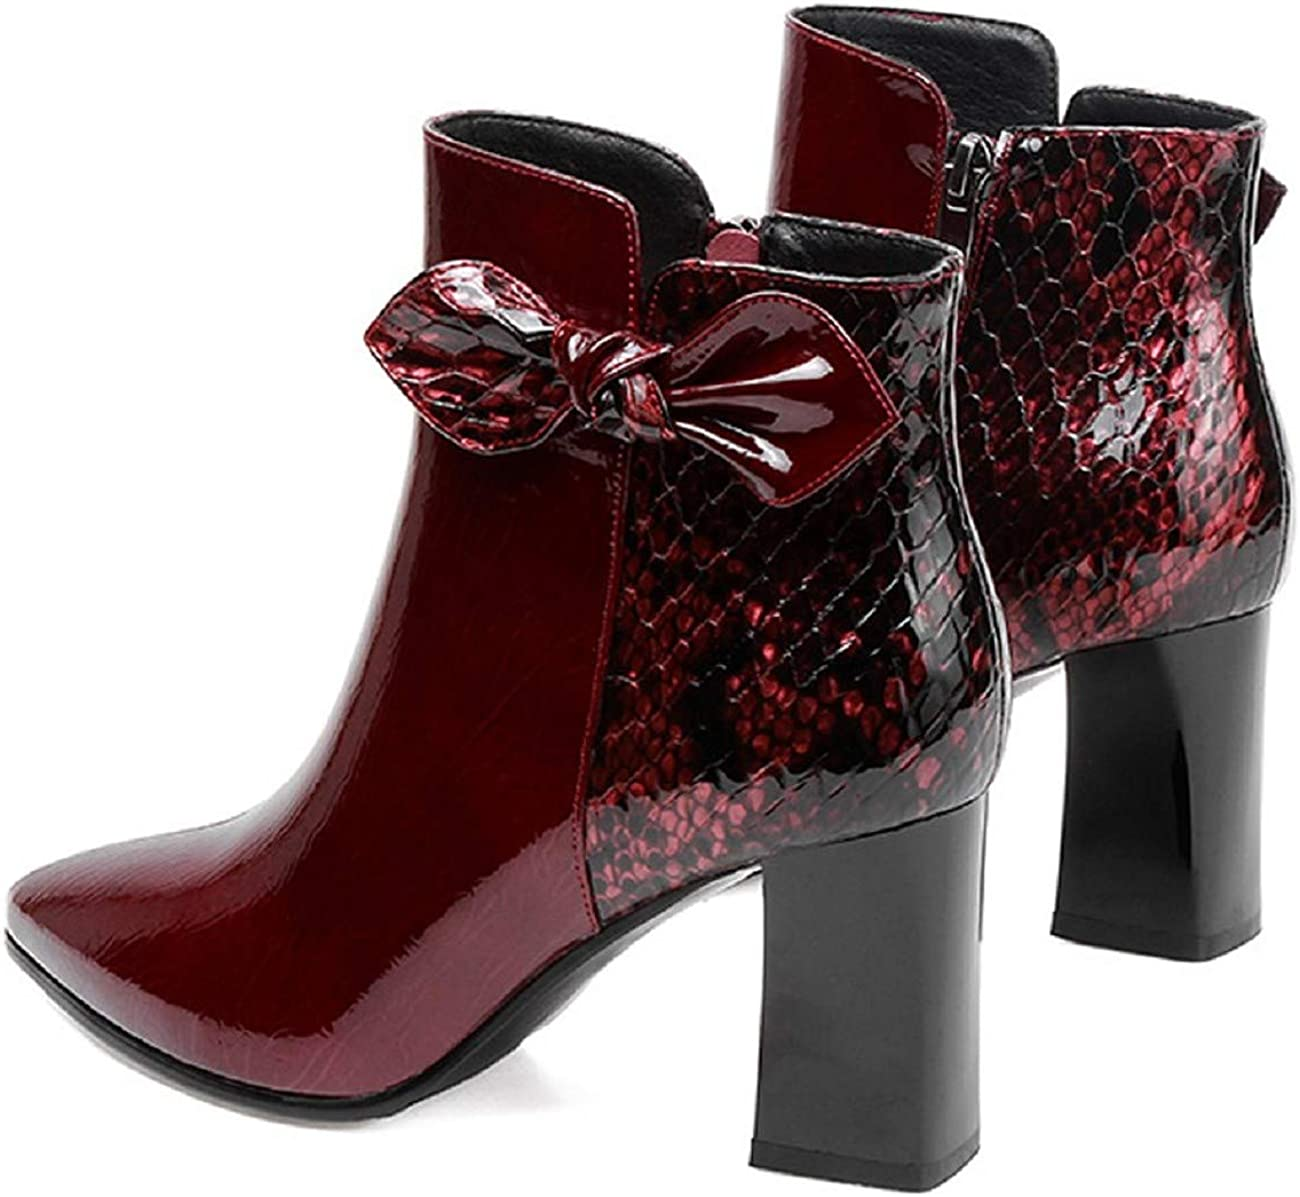 Tsmile Womens Color Block Patchwork Boots Patent Leather Snakeskin Bowknot Side Zipper High Block Heel Ankle Booties